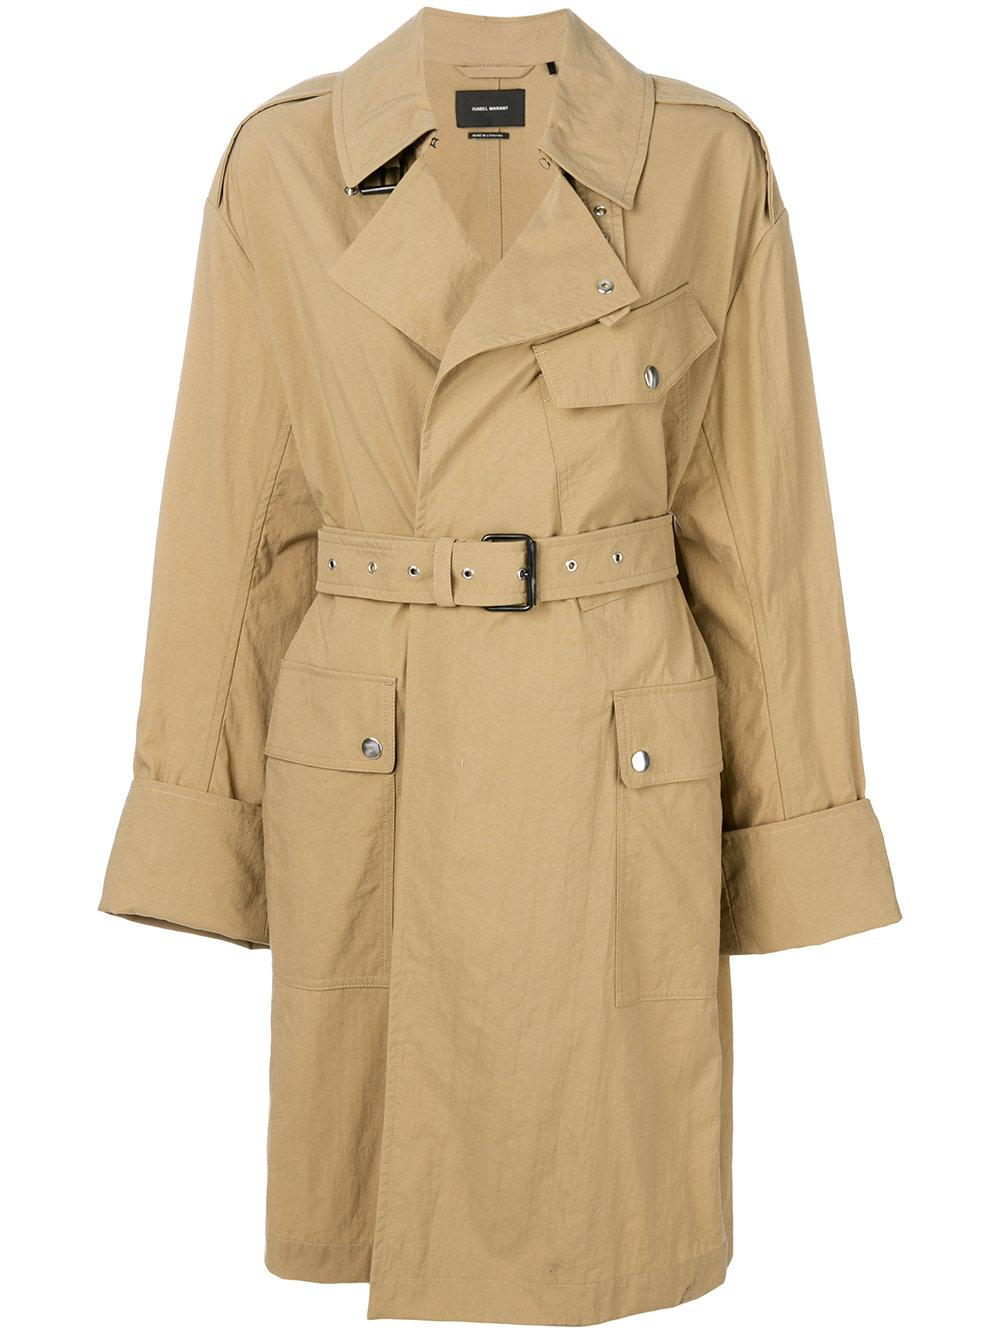 Isabel Marant Belted Trench Coat - Nude & Neutrals